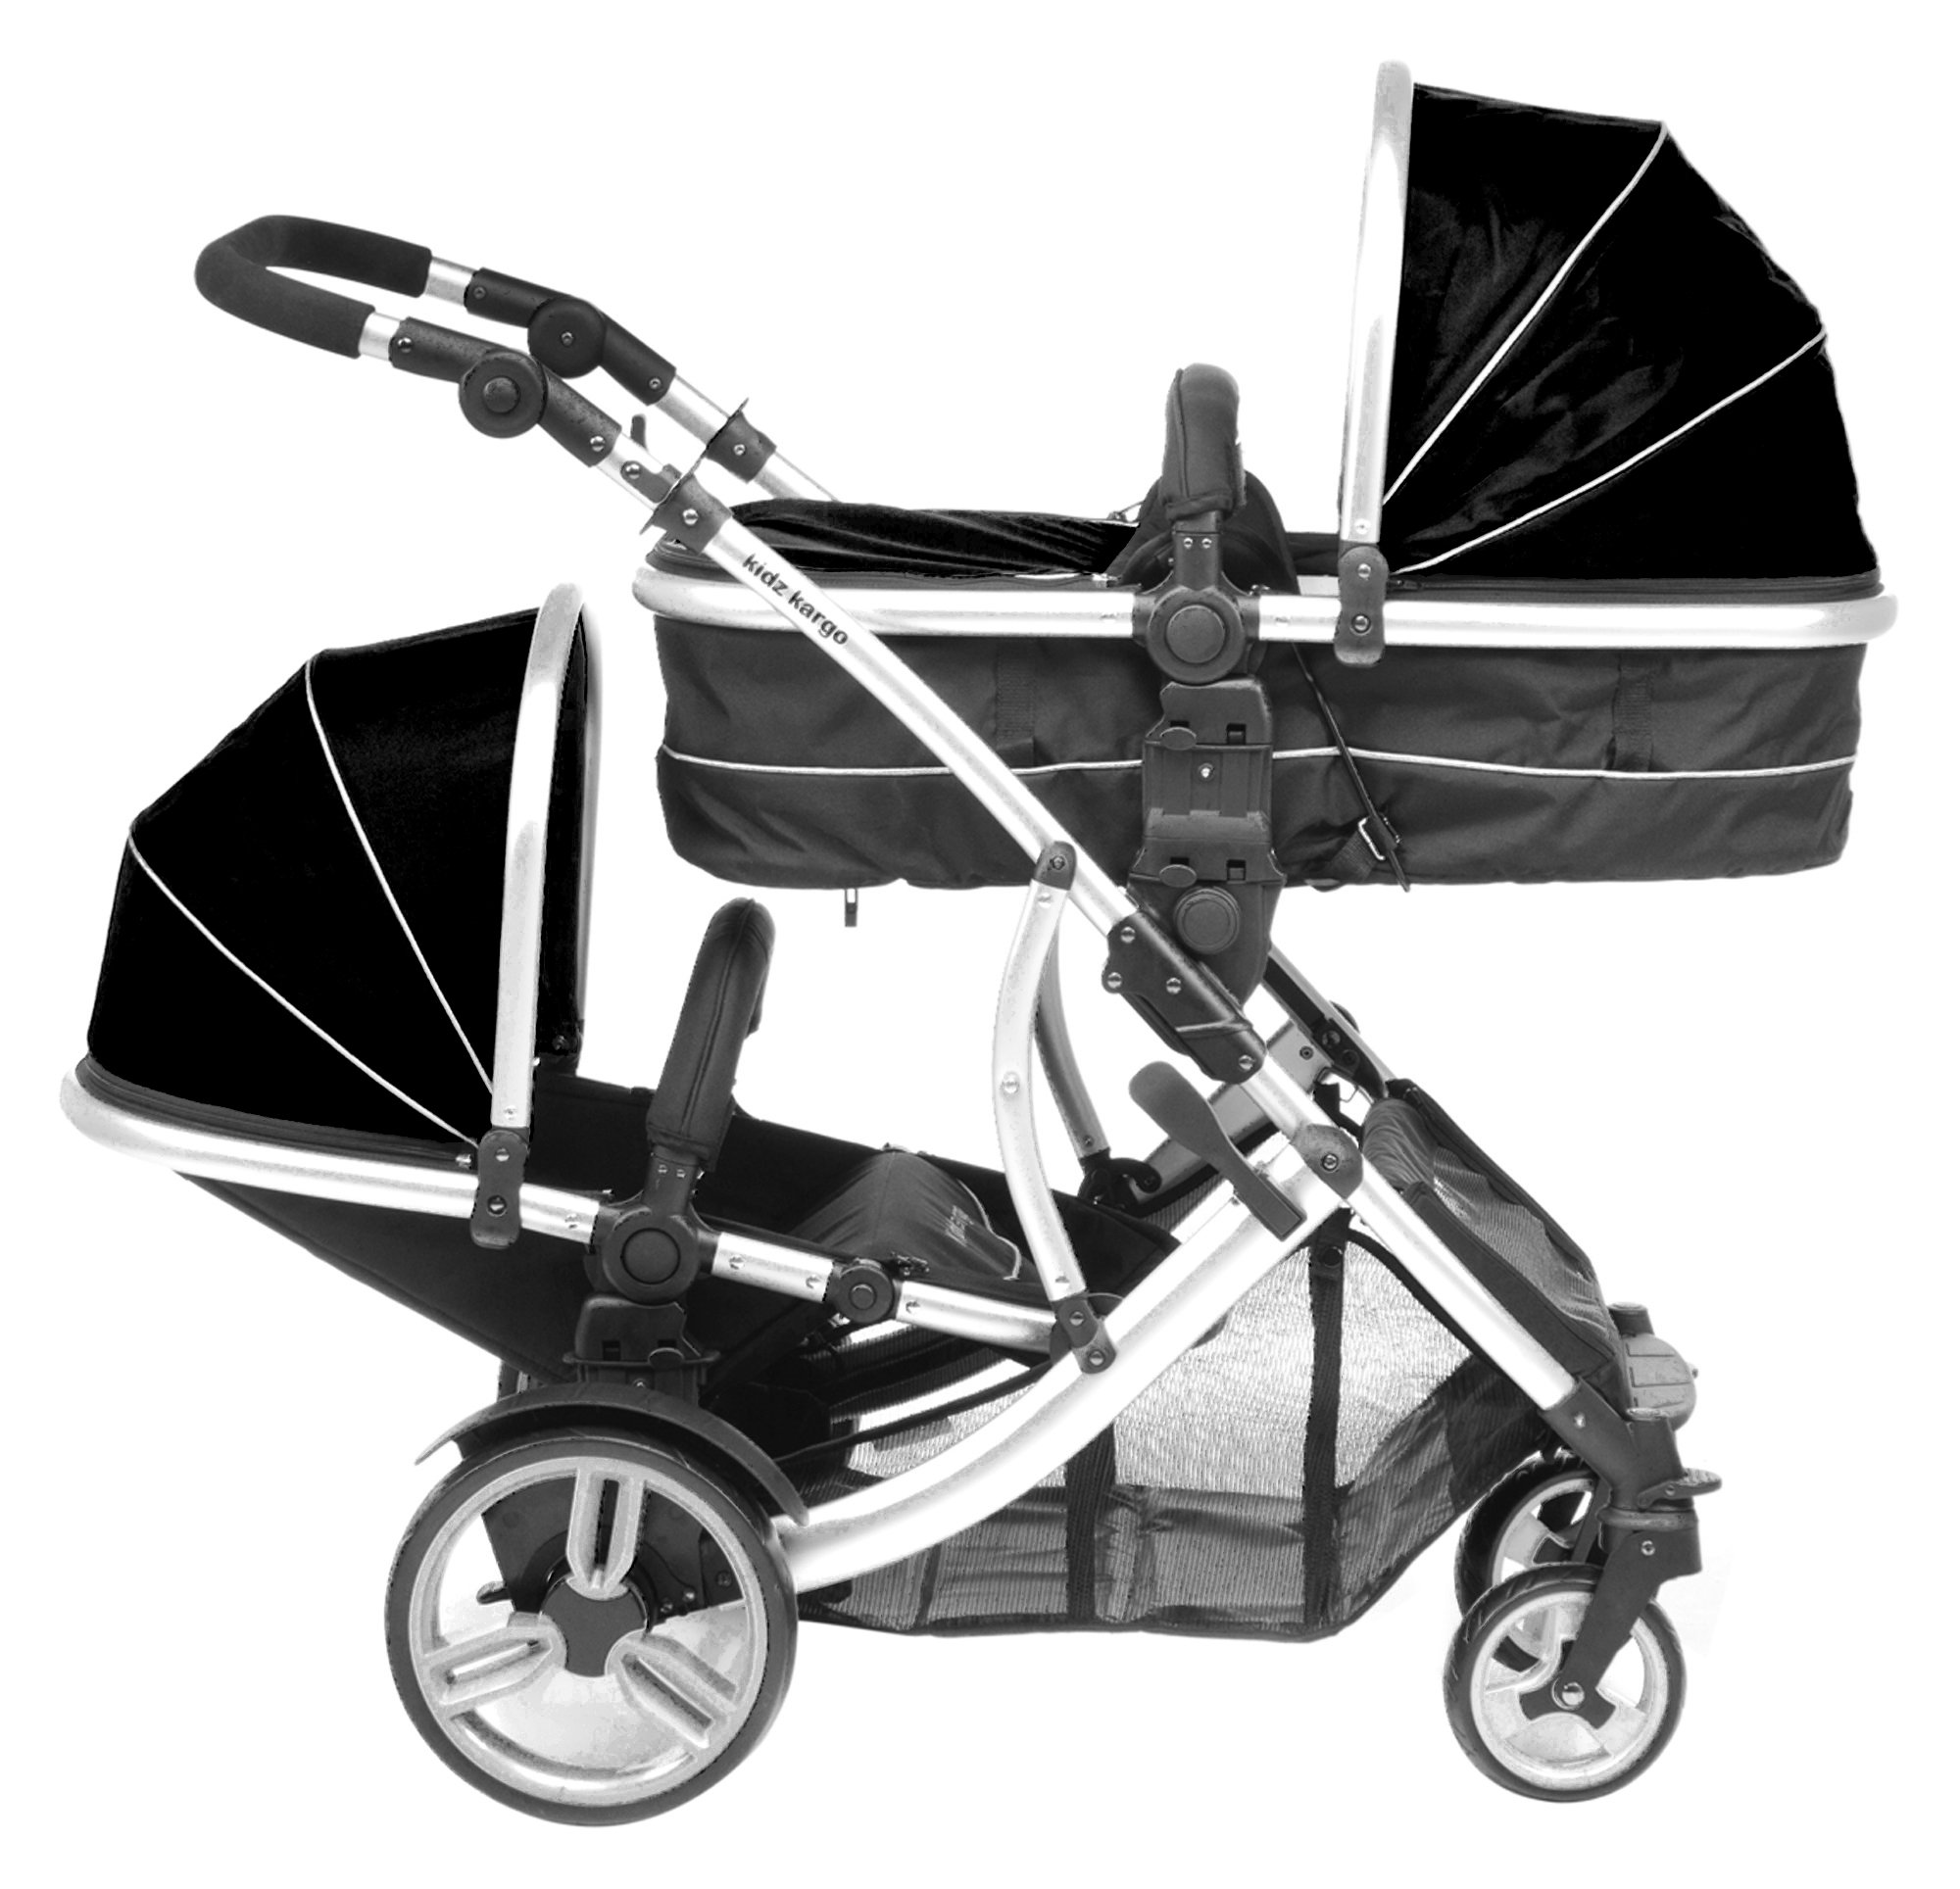 Duellette 21 BS combi Double Pushchair Twin Tandem complete carrycot/converts to seat unit. Free rain covers and 2 free Black footmuffs. Midnight Black by Kids Kargo Kids Kargo Demo video please see link https://www.youtube.com/watch?v=5L8eKWGqoso Various seat positions. Accommodates 1 or 2 car seats Carrycot converts to seat unit incl mattress. Toddler seat from 6 months 5